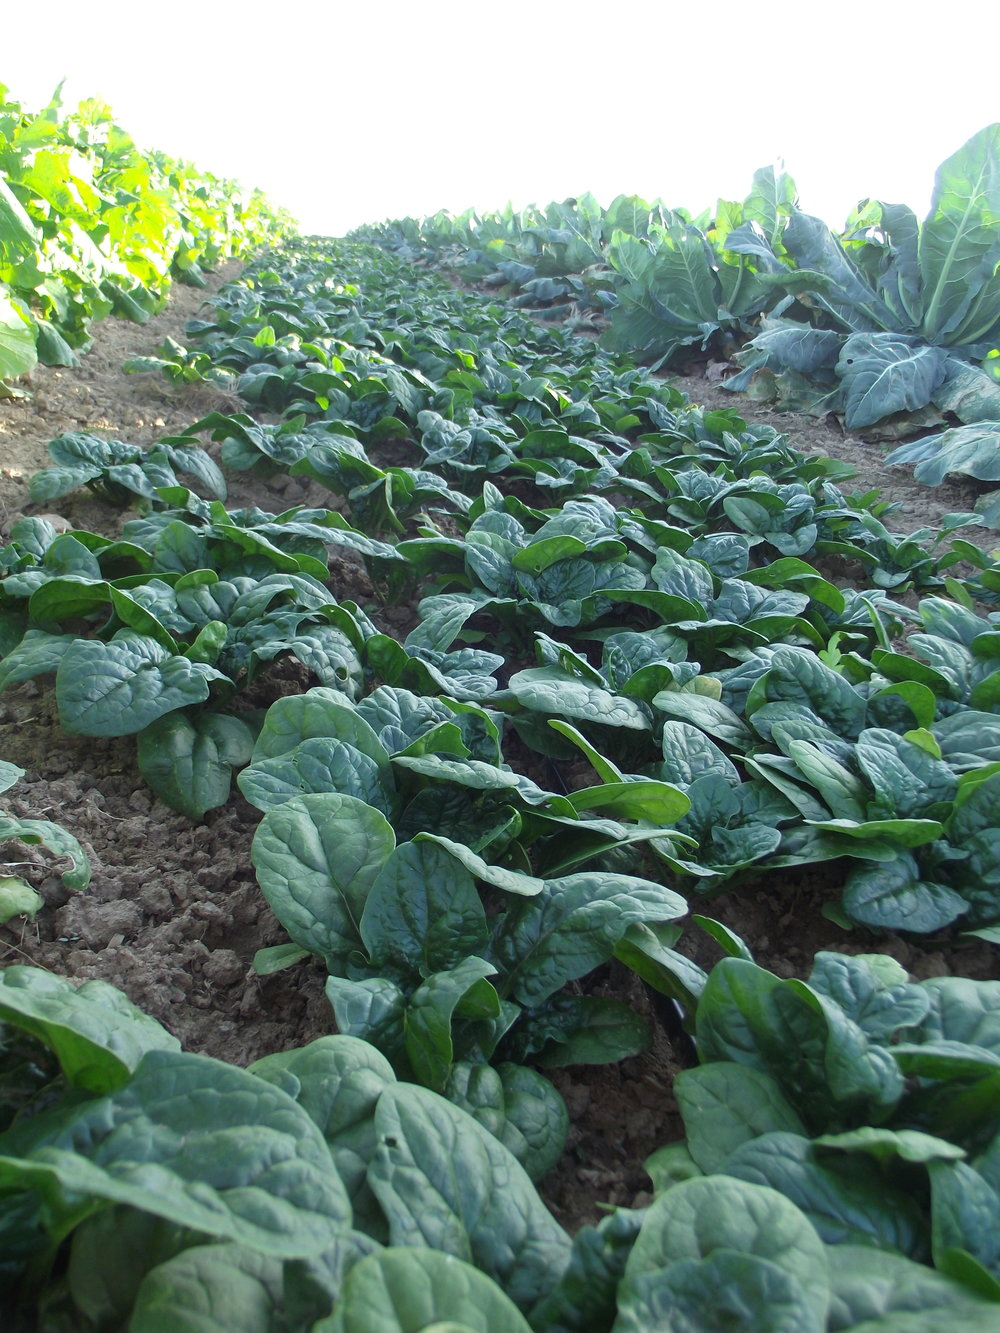 A beautiful field of spinach in autumn